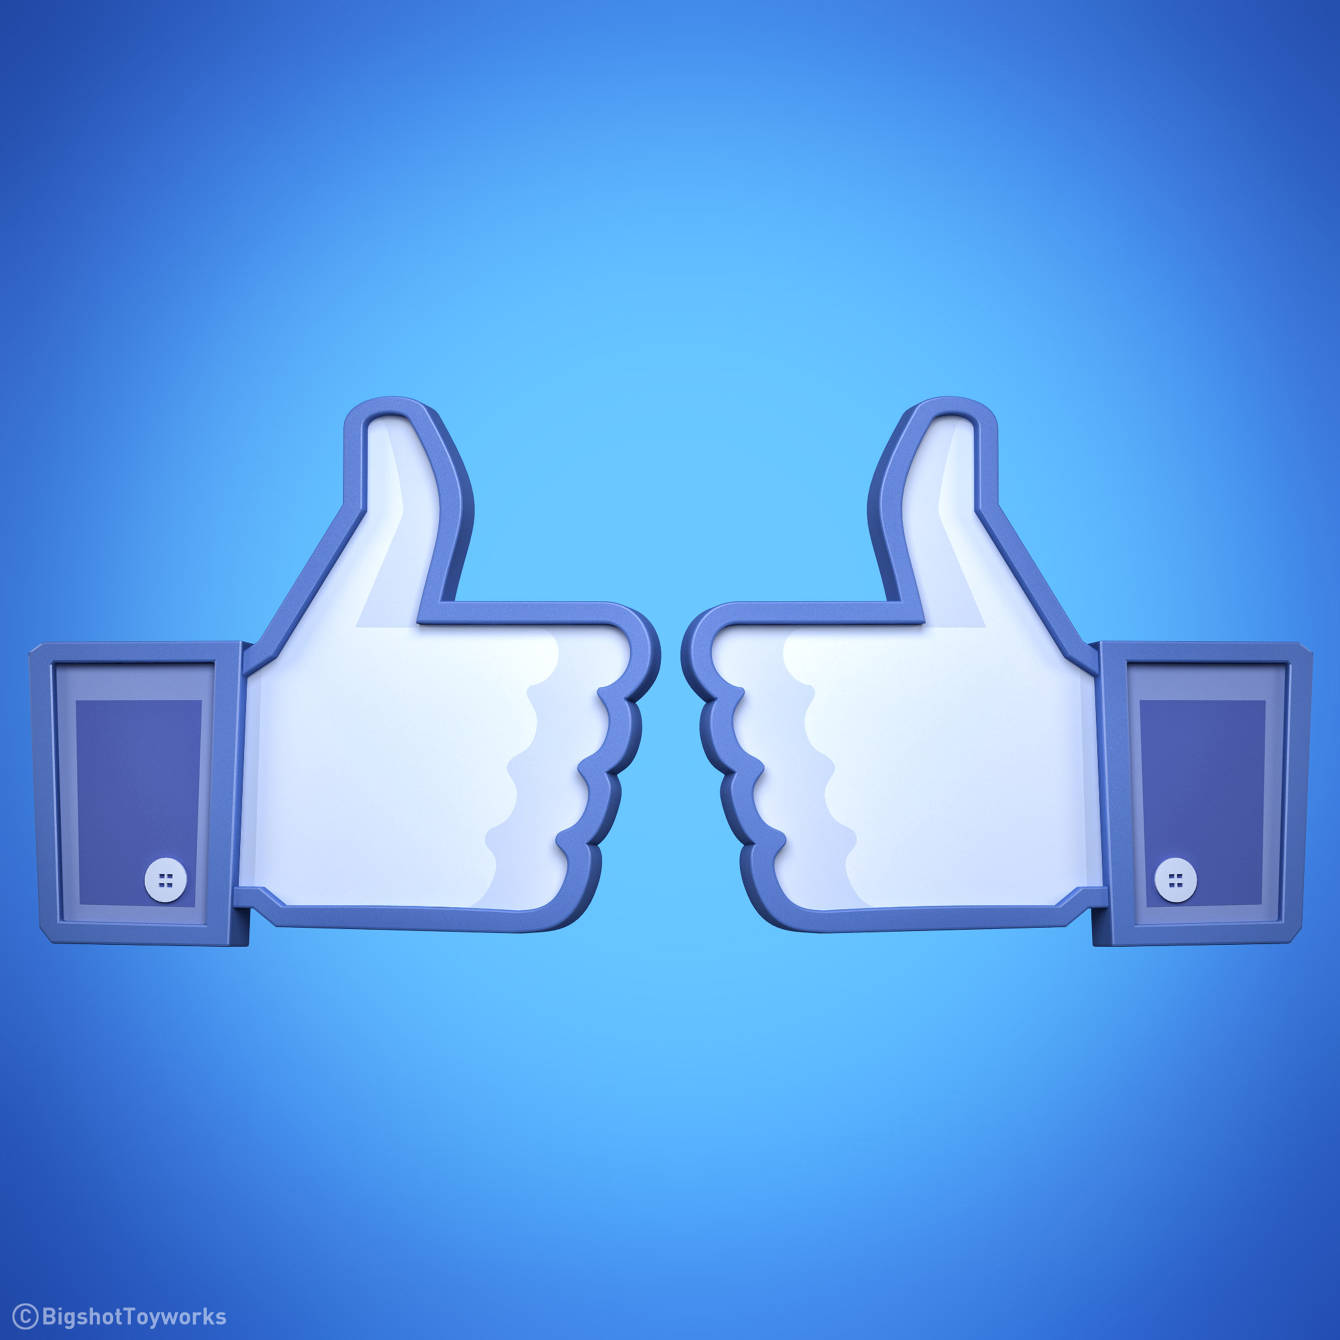 FB-Icons-Facebook Super like_2x.jpg